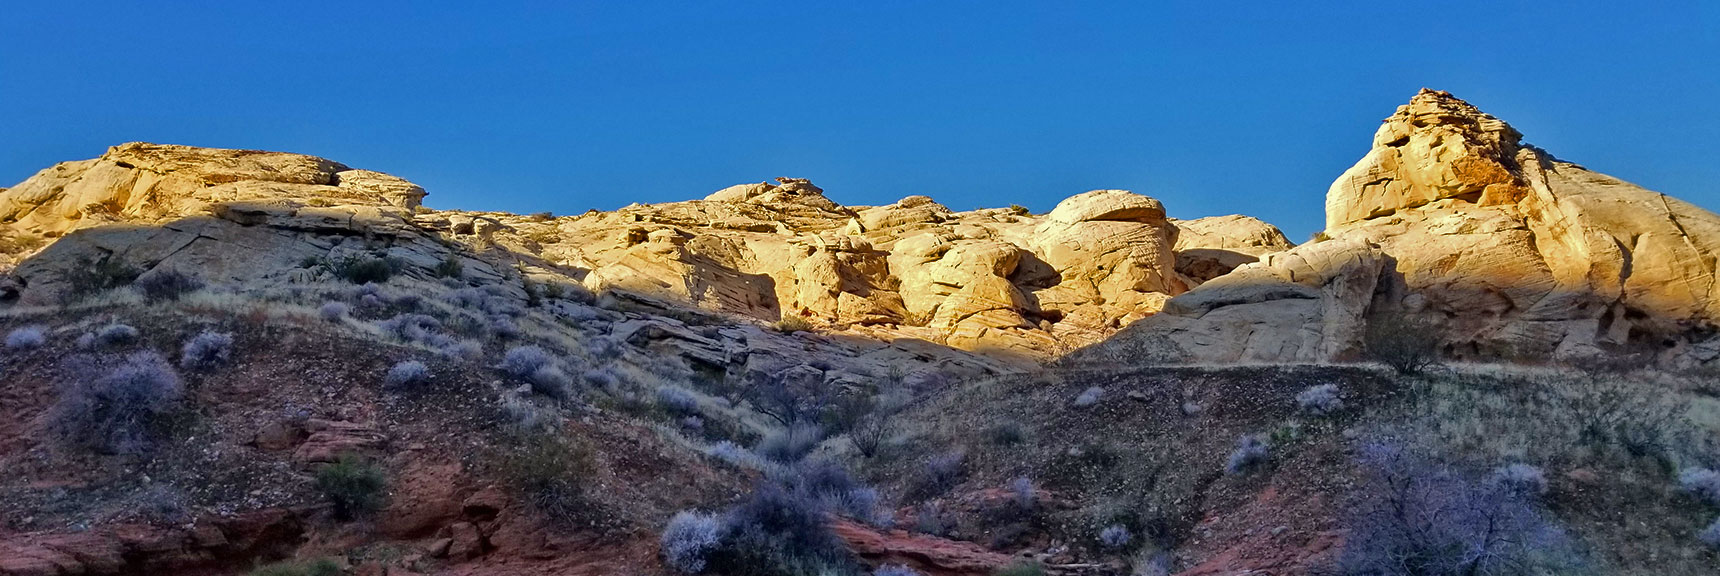 White Domes Coming Into View from the Northern Canyon Wash on Prospect Trail in Valley of Fire State Park, Nevada